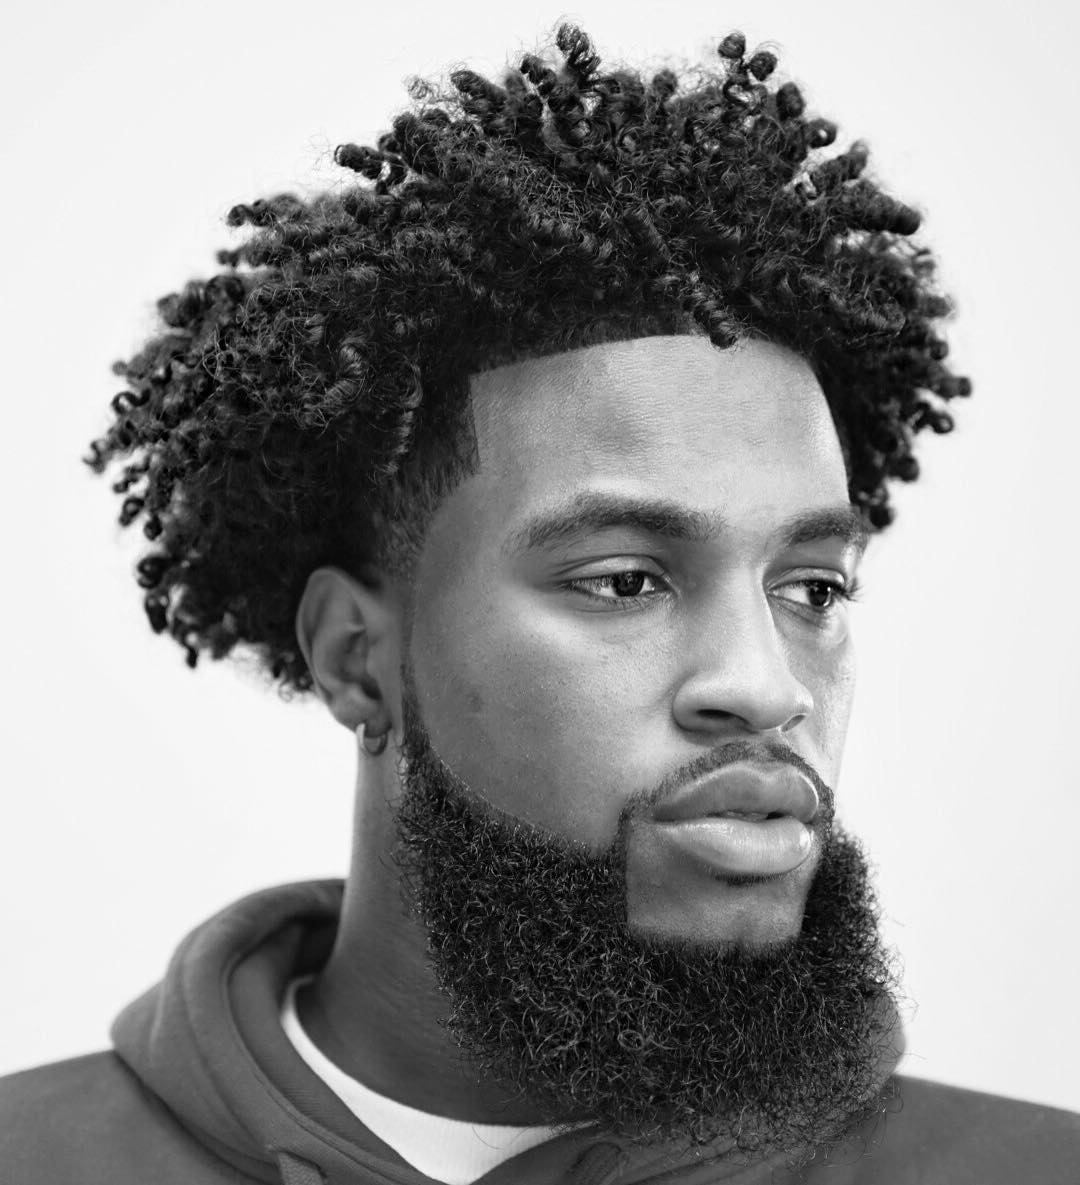 Widely Used Afro Medium Hairstyles In Cool Haircuts For Black Men (View 20 of 20)